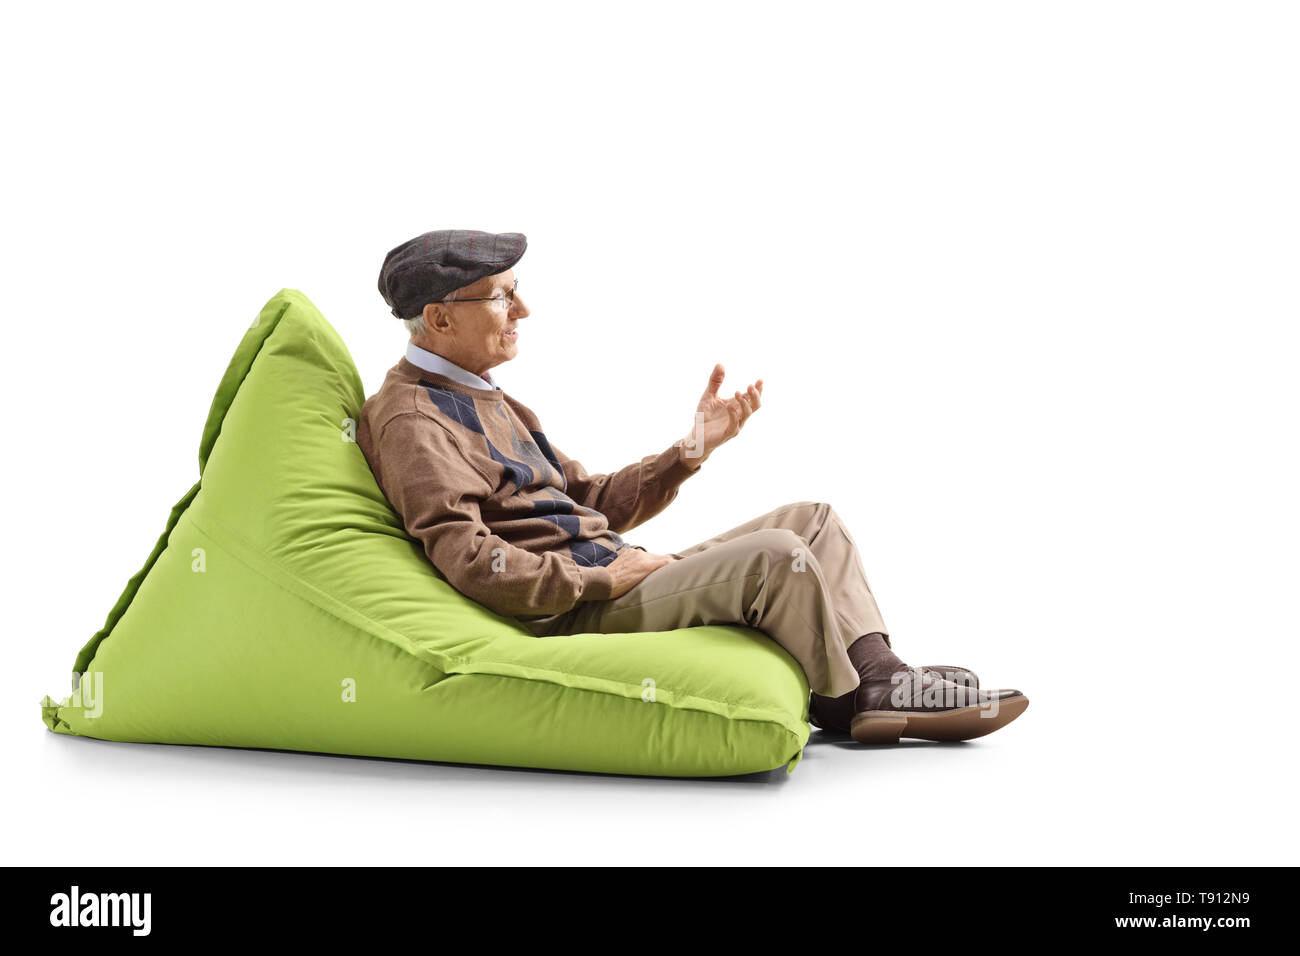 Full length profile shot of a senior man sitting on a bean bag and gesturing with hand isolated on white background - Stock Image